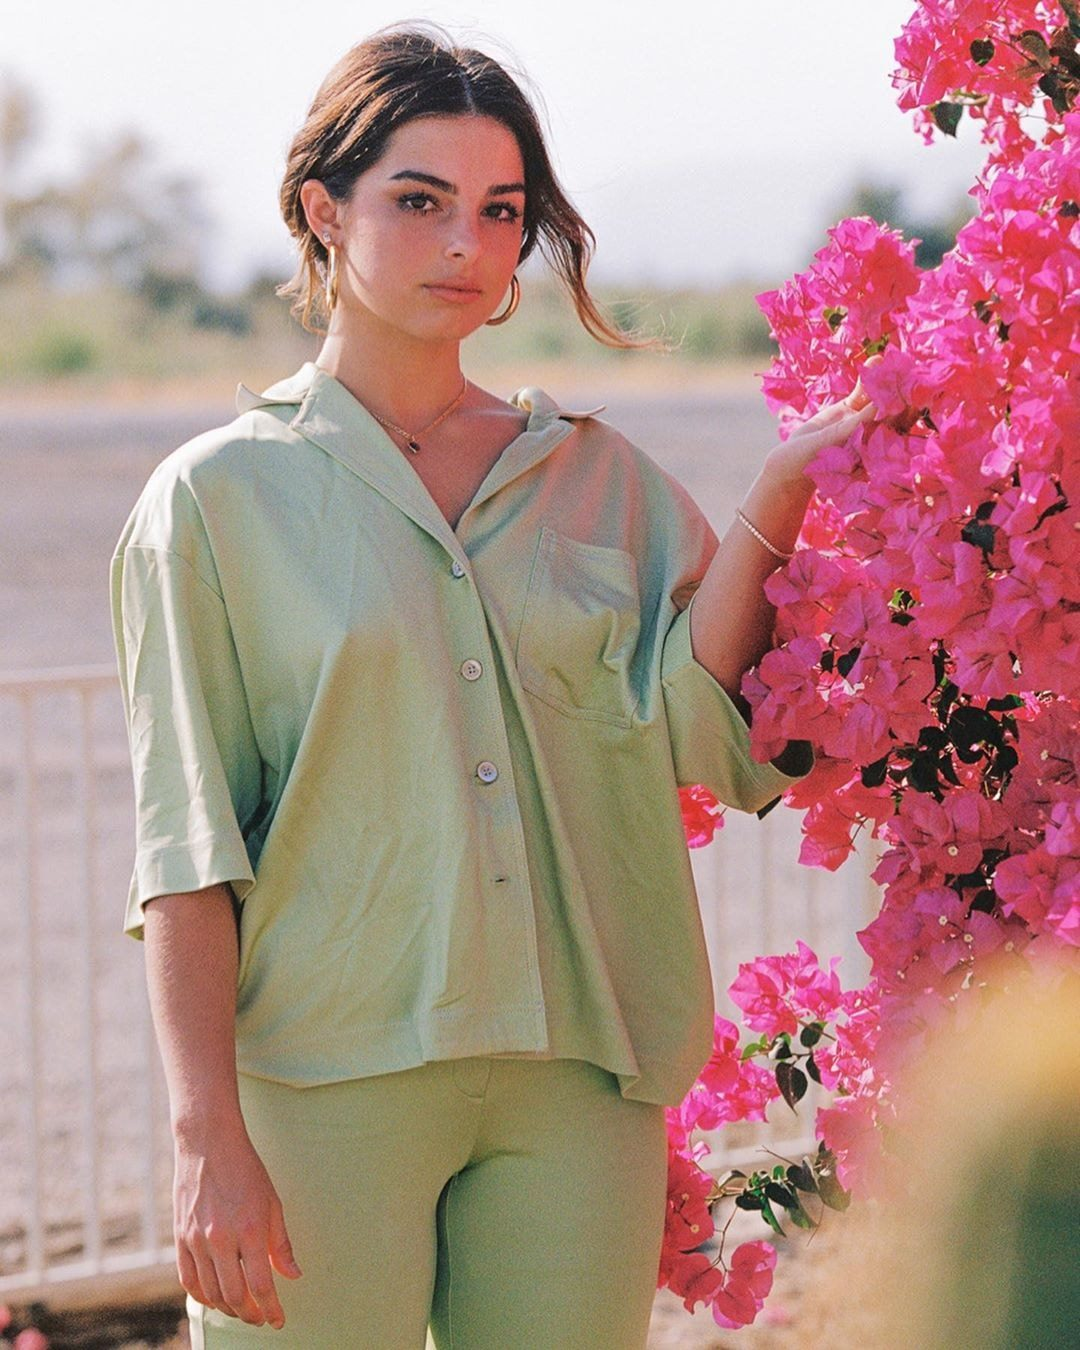 Download Addison Rae Green Outfit PNG